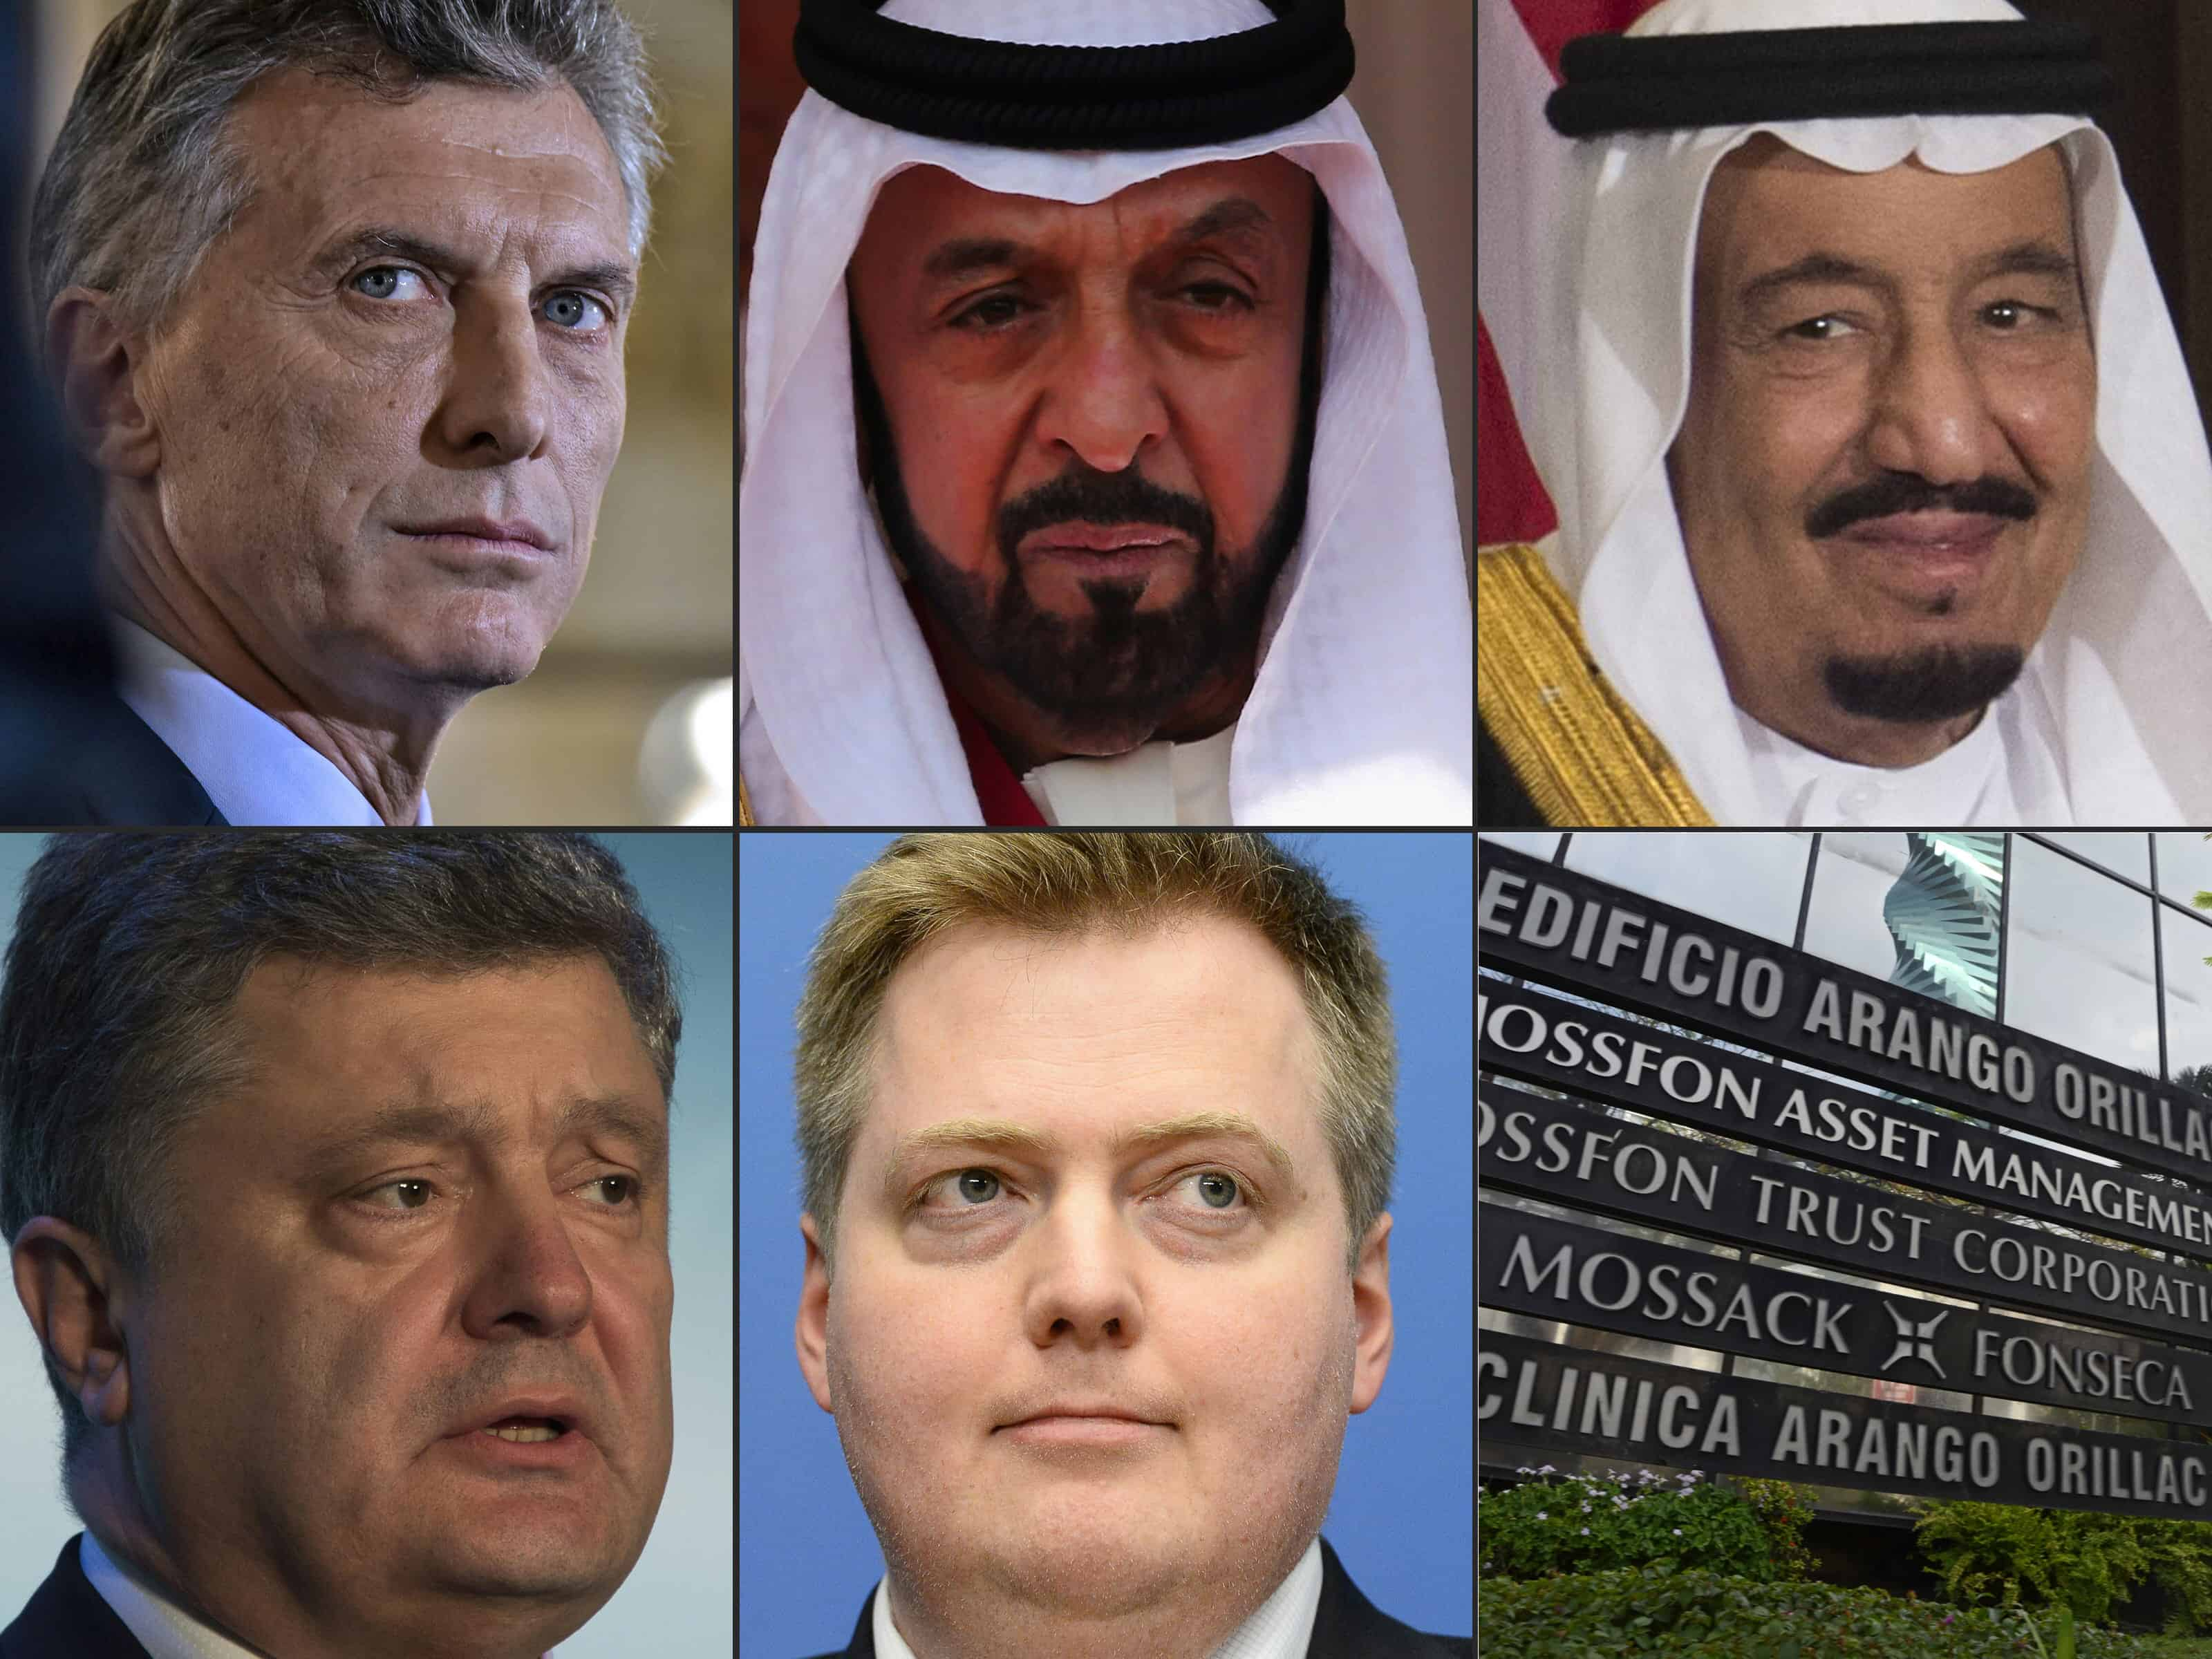 Panama Papers: Some of those mentioned in the Panama Papers leak, from top left, Argentina's President Mauricio Macri, Emirati President Sheikh Khalifa bin Zayed al-Nahayan and Saudi King Salman bin Abdulaziz, Ukraine President Petro Poroshenko and former Prime Minister of Iceland Sigmundur David Gunnlaugss. At bottom right, Panama-based law firm Mossack Fonseca.